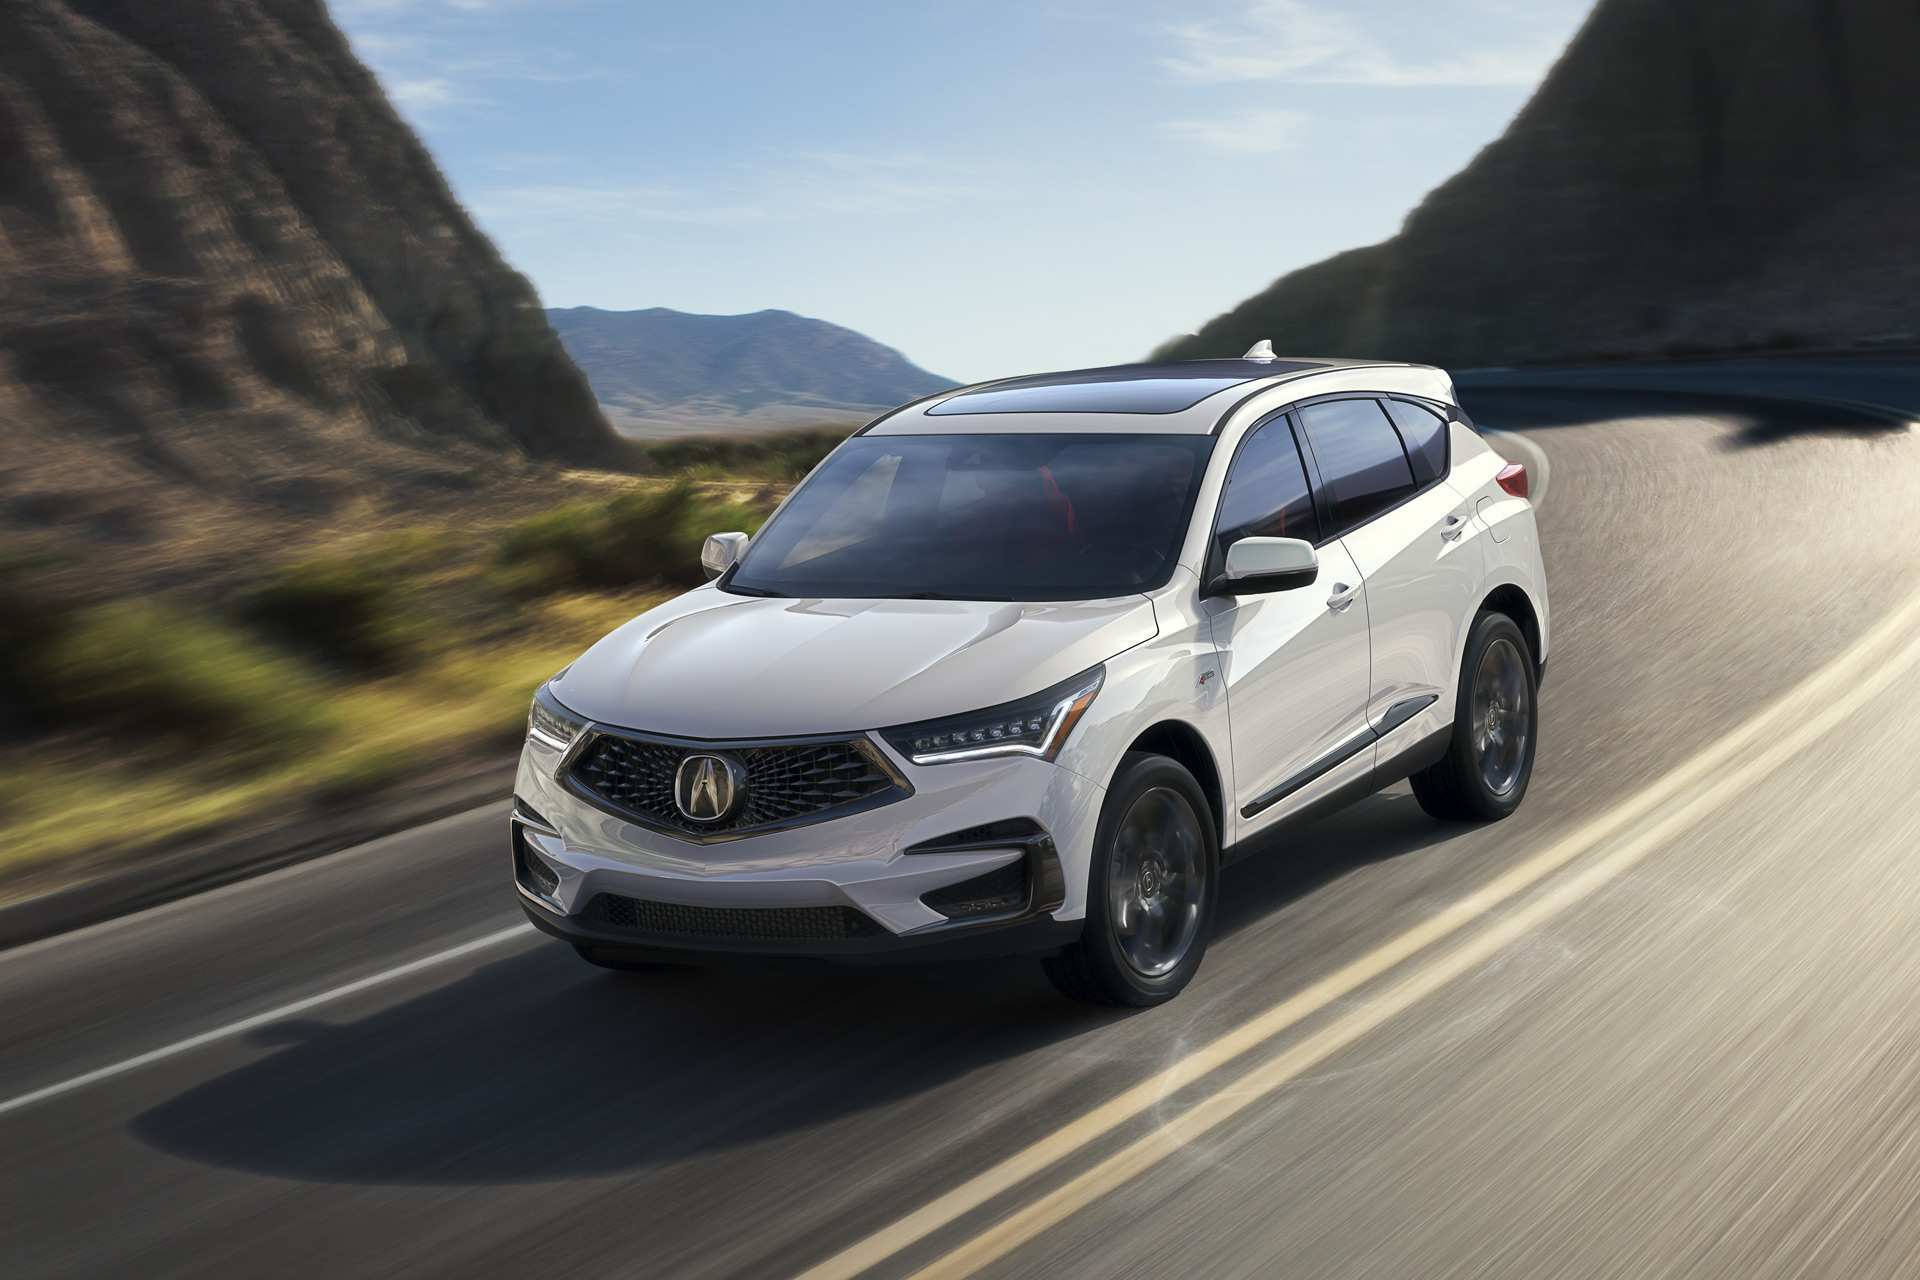 86 All New Difference Between 2019 And 2020 Acura Rdx Price and Review with Difference Between 2019 And 2020 Acura Rdx